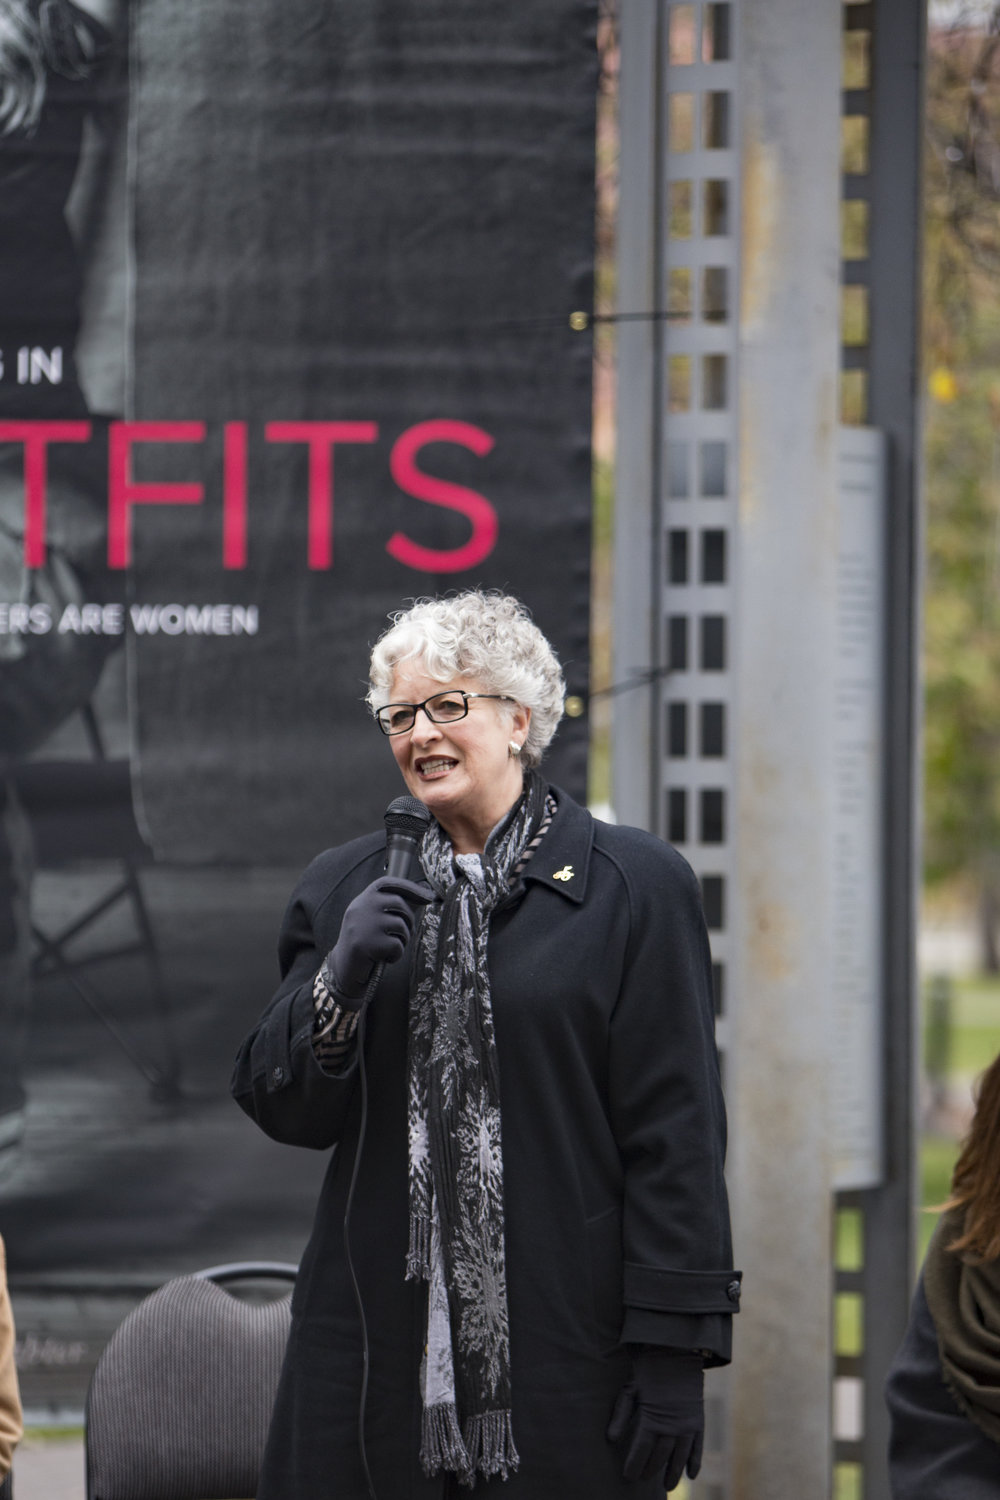 Frances Wright, founder of the Famous 5 Foundation addresses the group at the Persons Day event at Olympic Plaza in Calgary on Oct 18, 2016